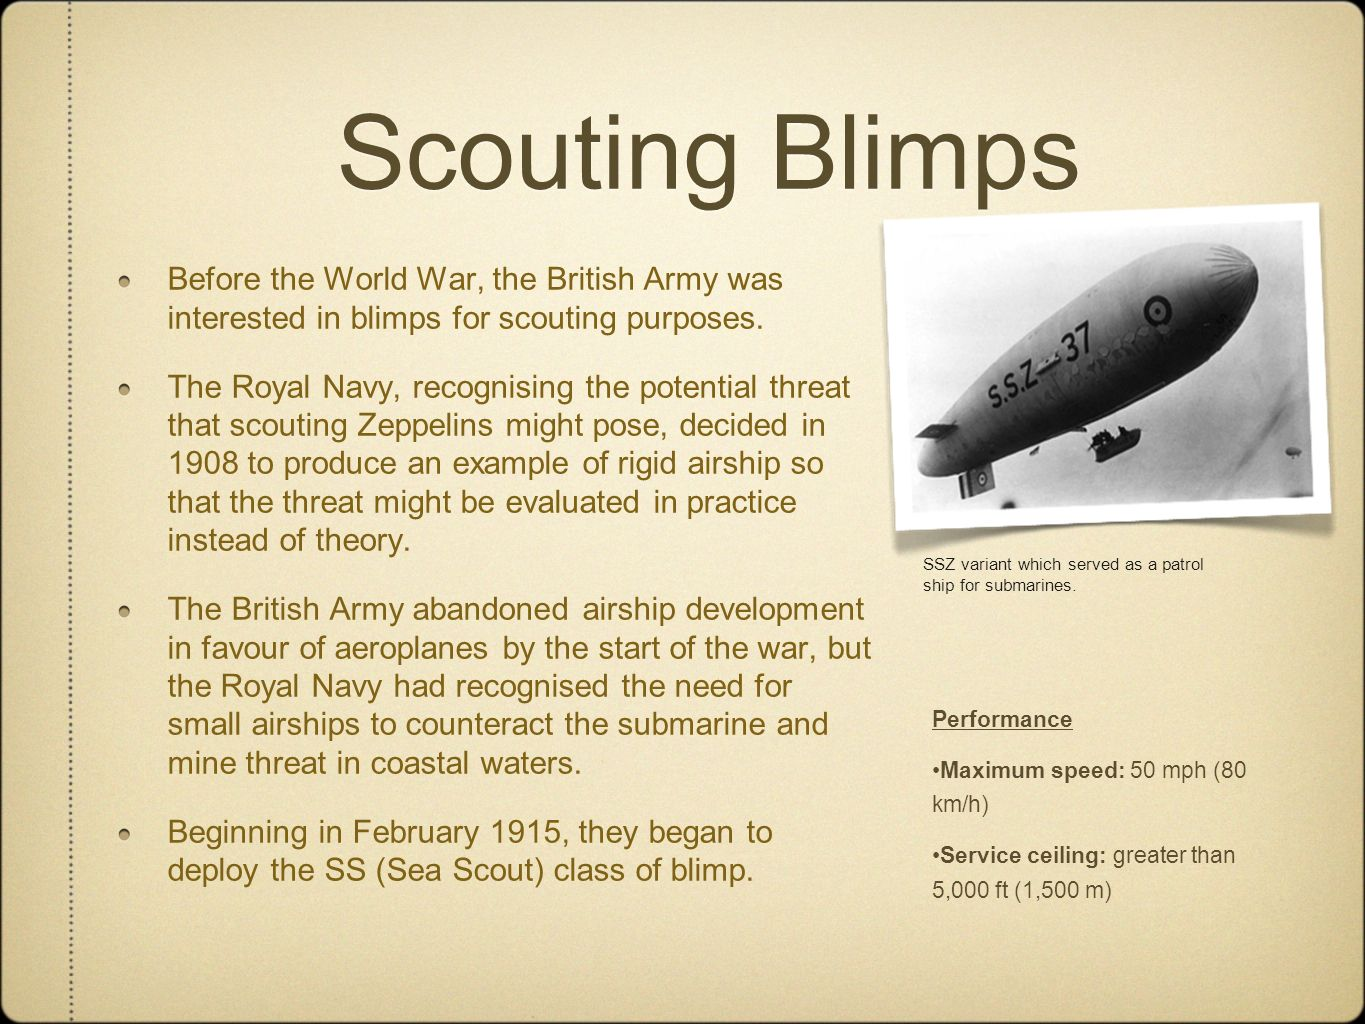 Scouting Blimps Before the World War, the British Army was interested in blimps for scouting purposes.